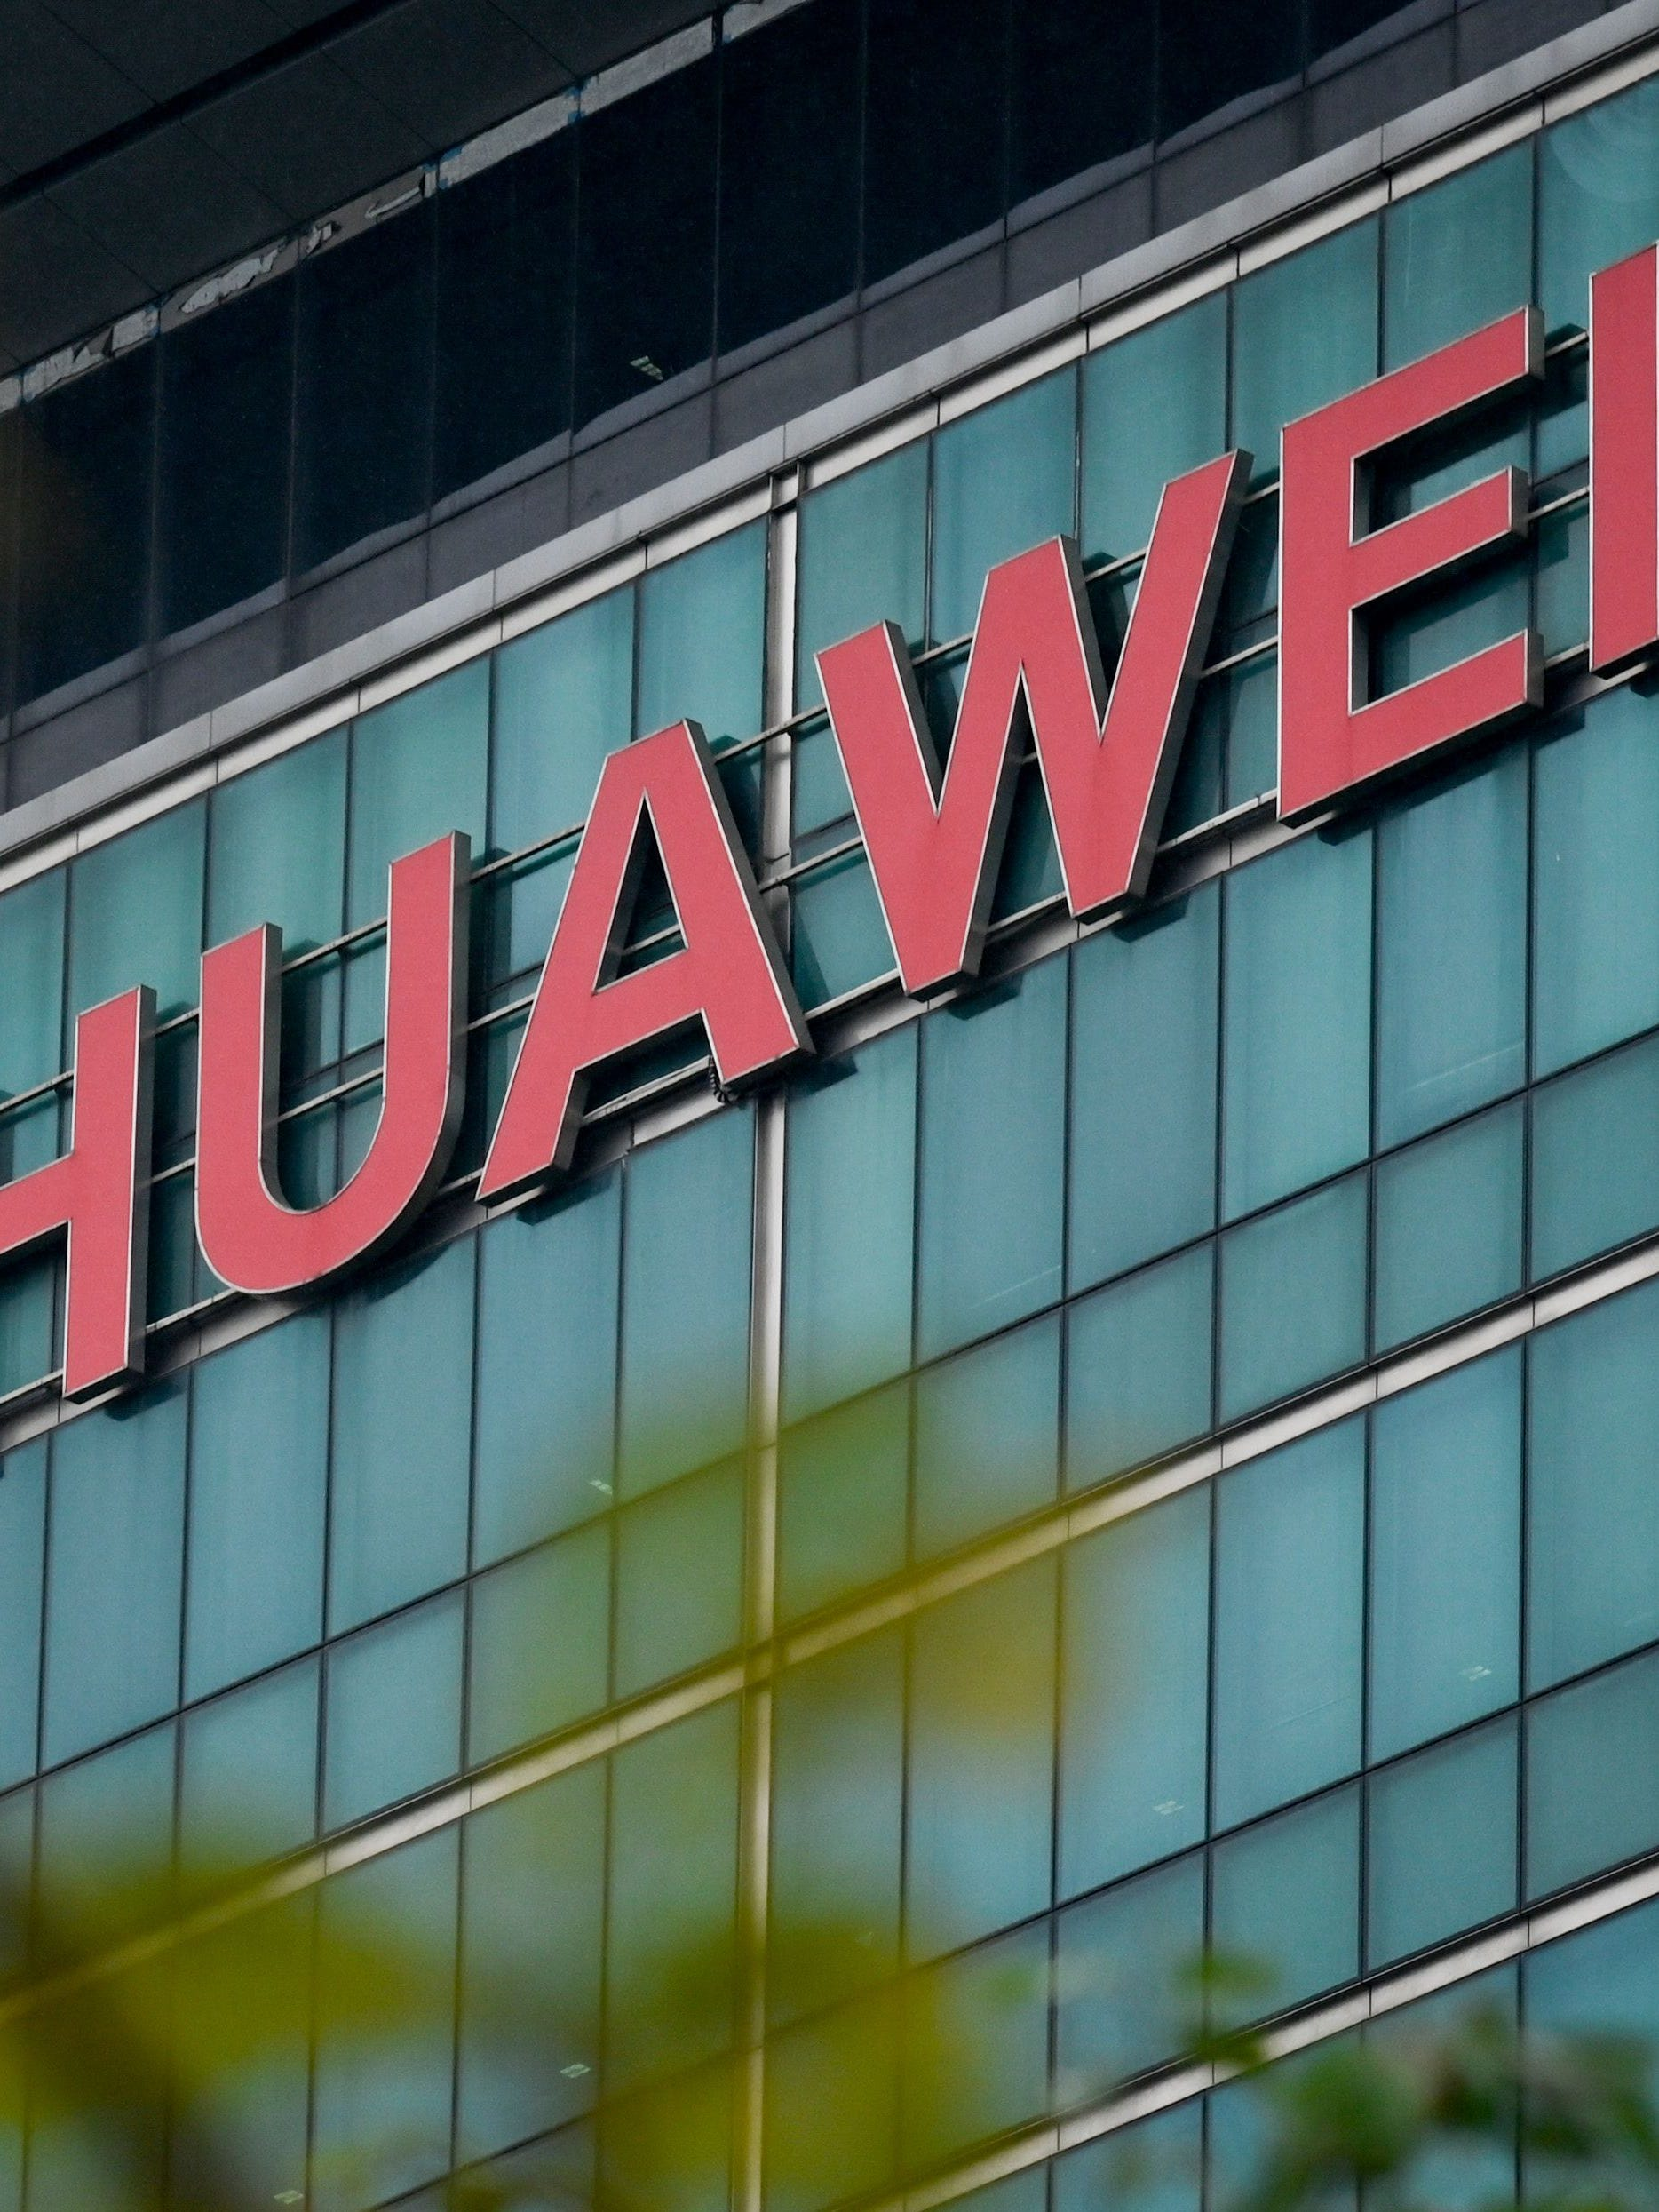 Huawei headquarters in Shenzhen, China.